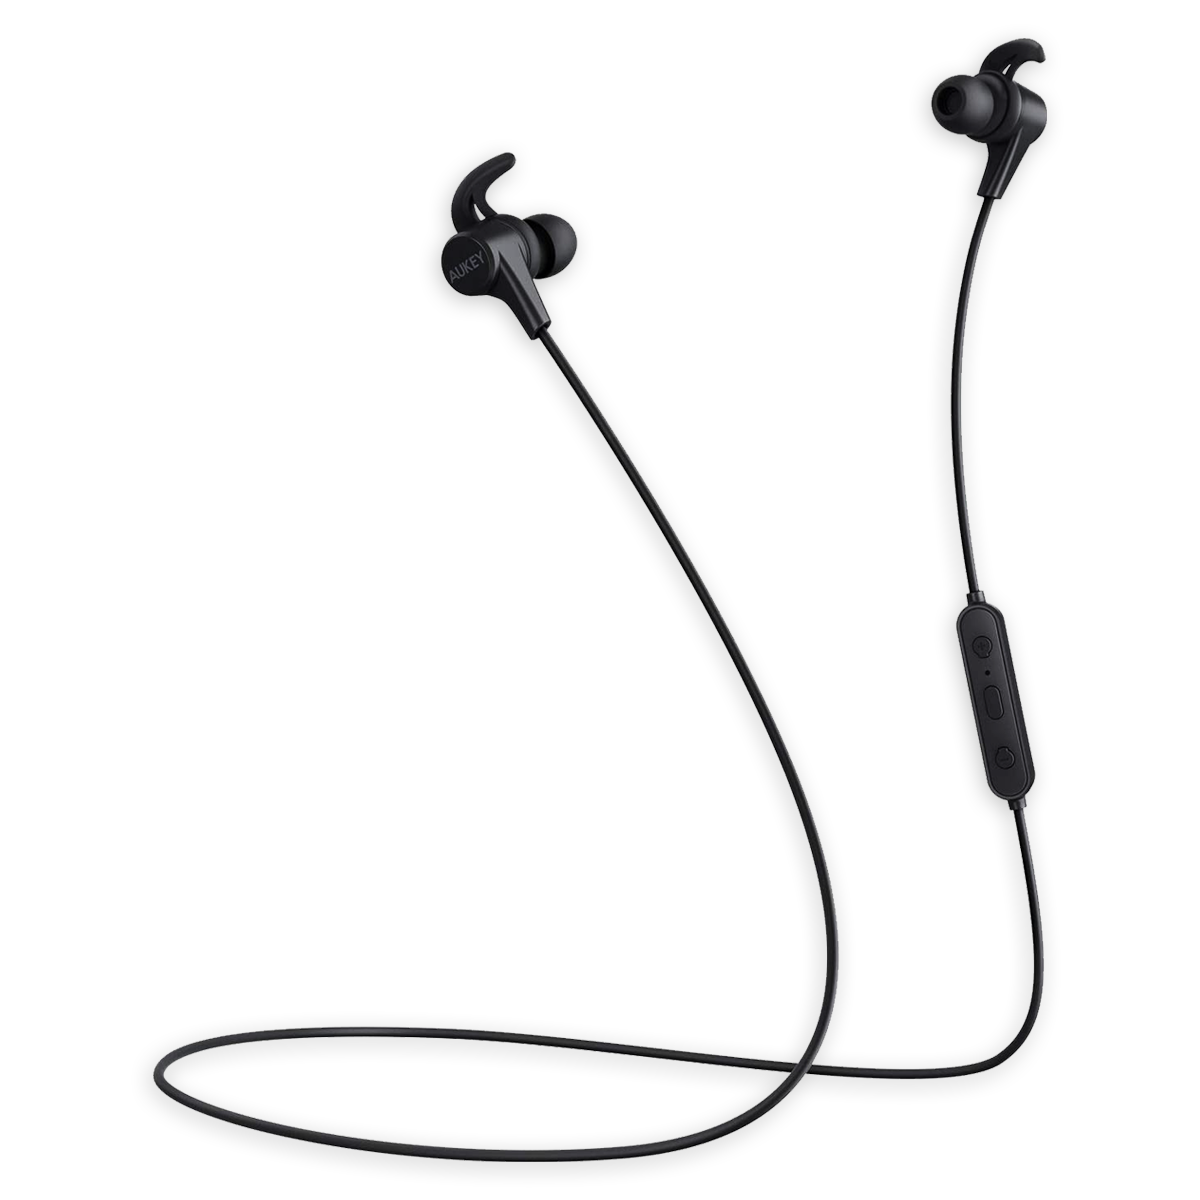 AUKEY EP-B40 Wireless Bluetooth Earbuds